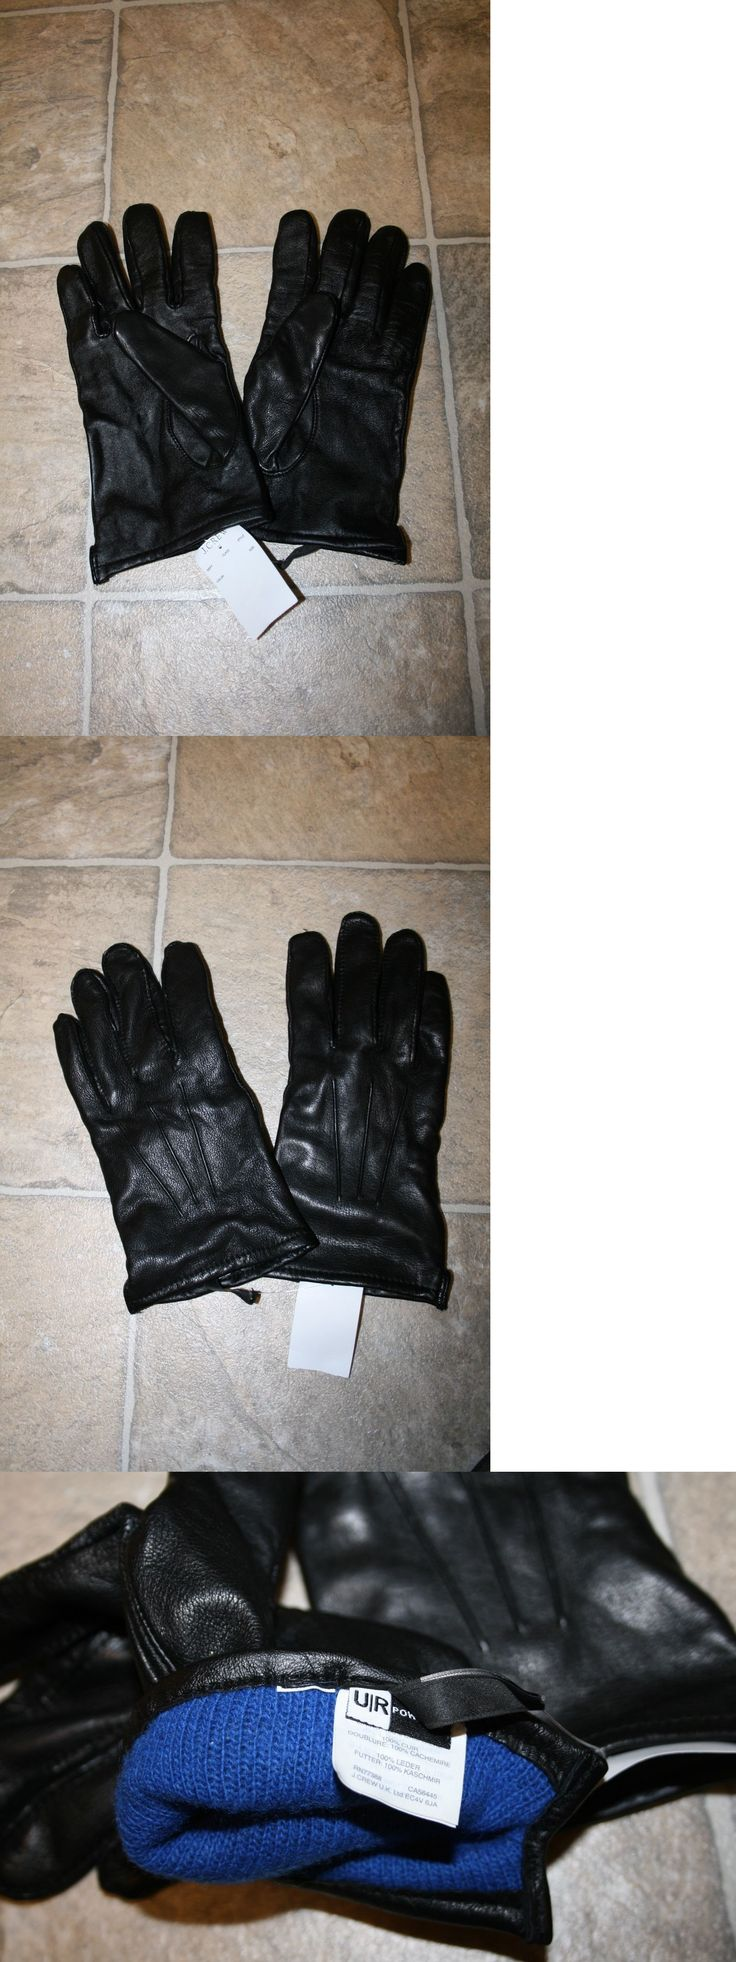 Gloves and Mittens 169278: New J. Crew Cashmere-Lined Leather Smartphone Gloves Black Size Large -> BUY IT NOW ONLY: $44.99 on eBay!